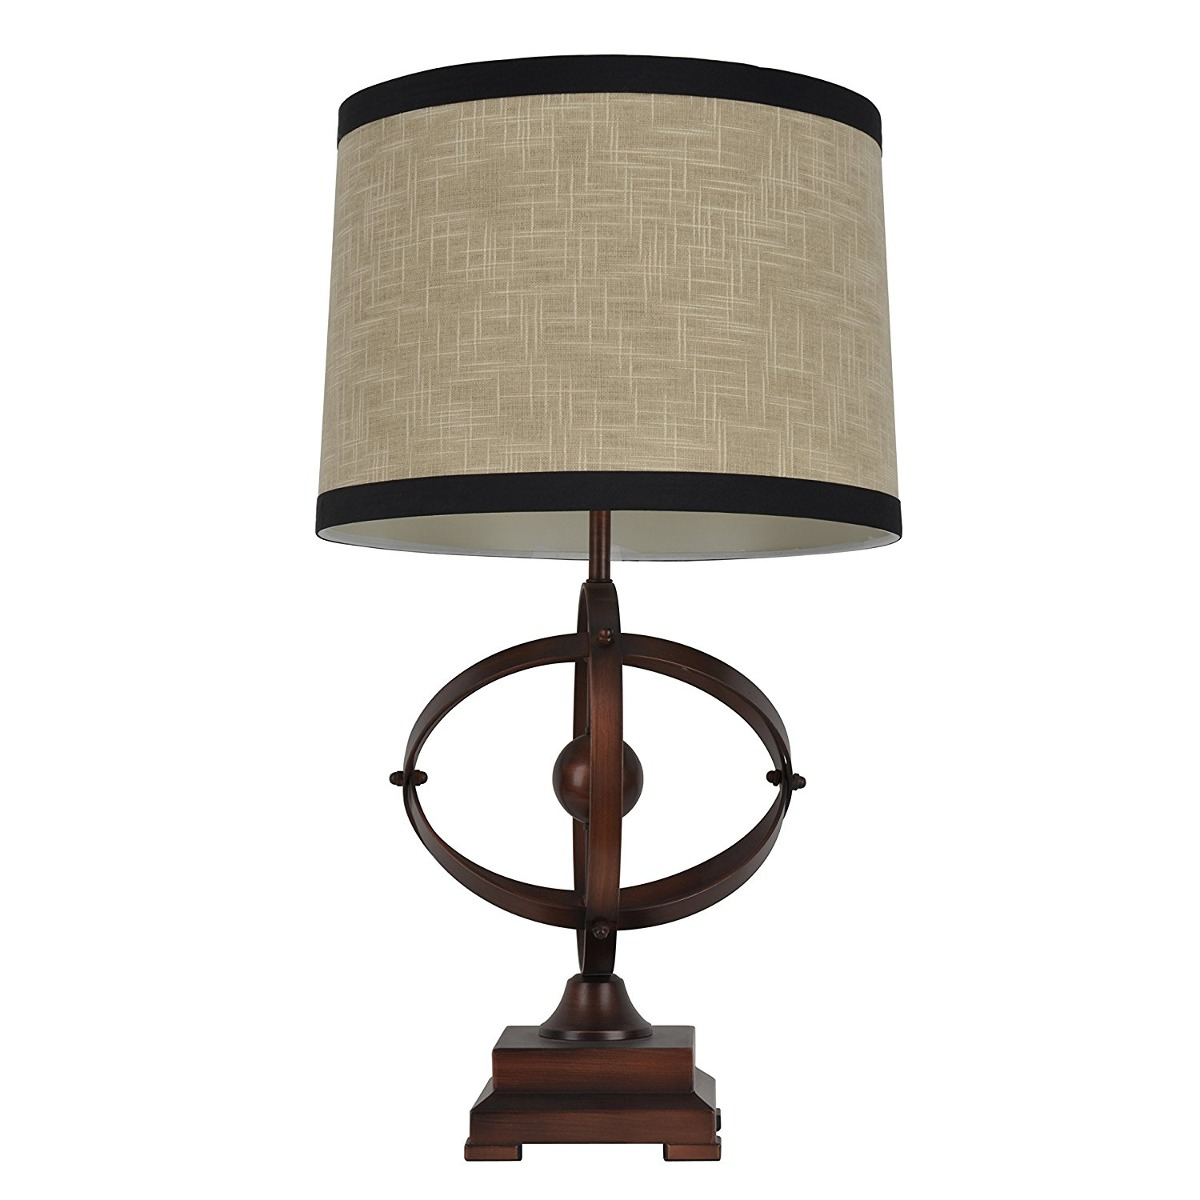 Dcor therapy tl7924 285 brown and black wood table lamp black wood table lamp cargando zoom aloadofball Choice Image